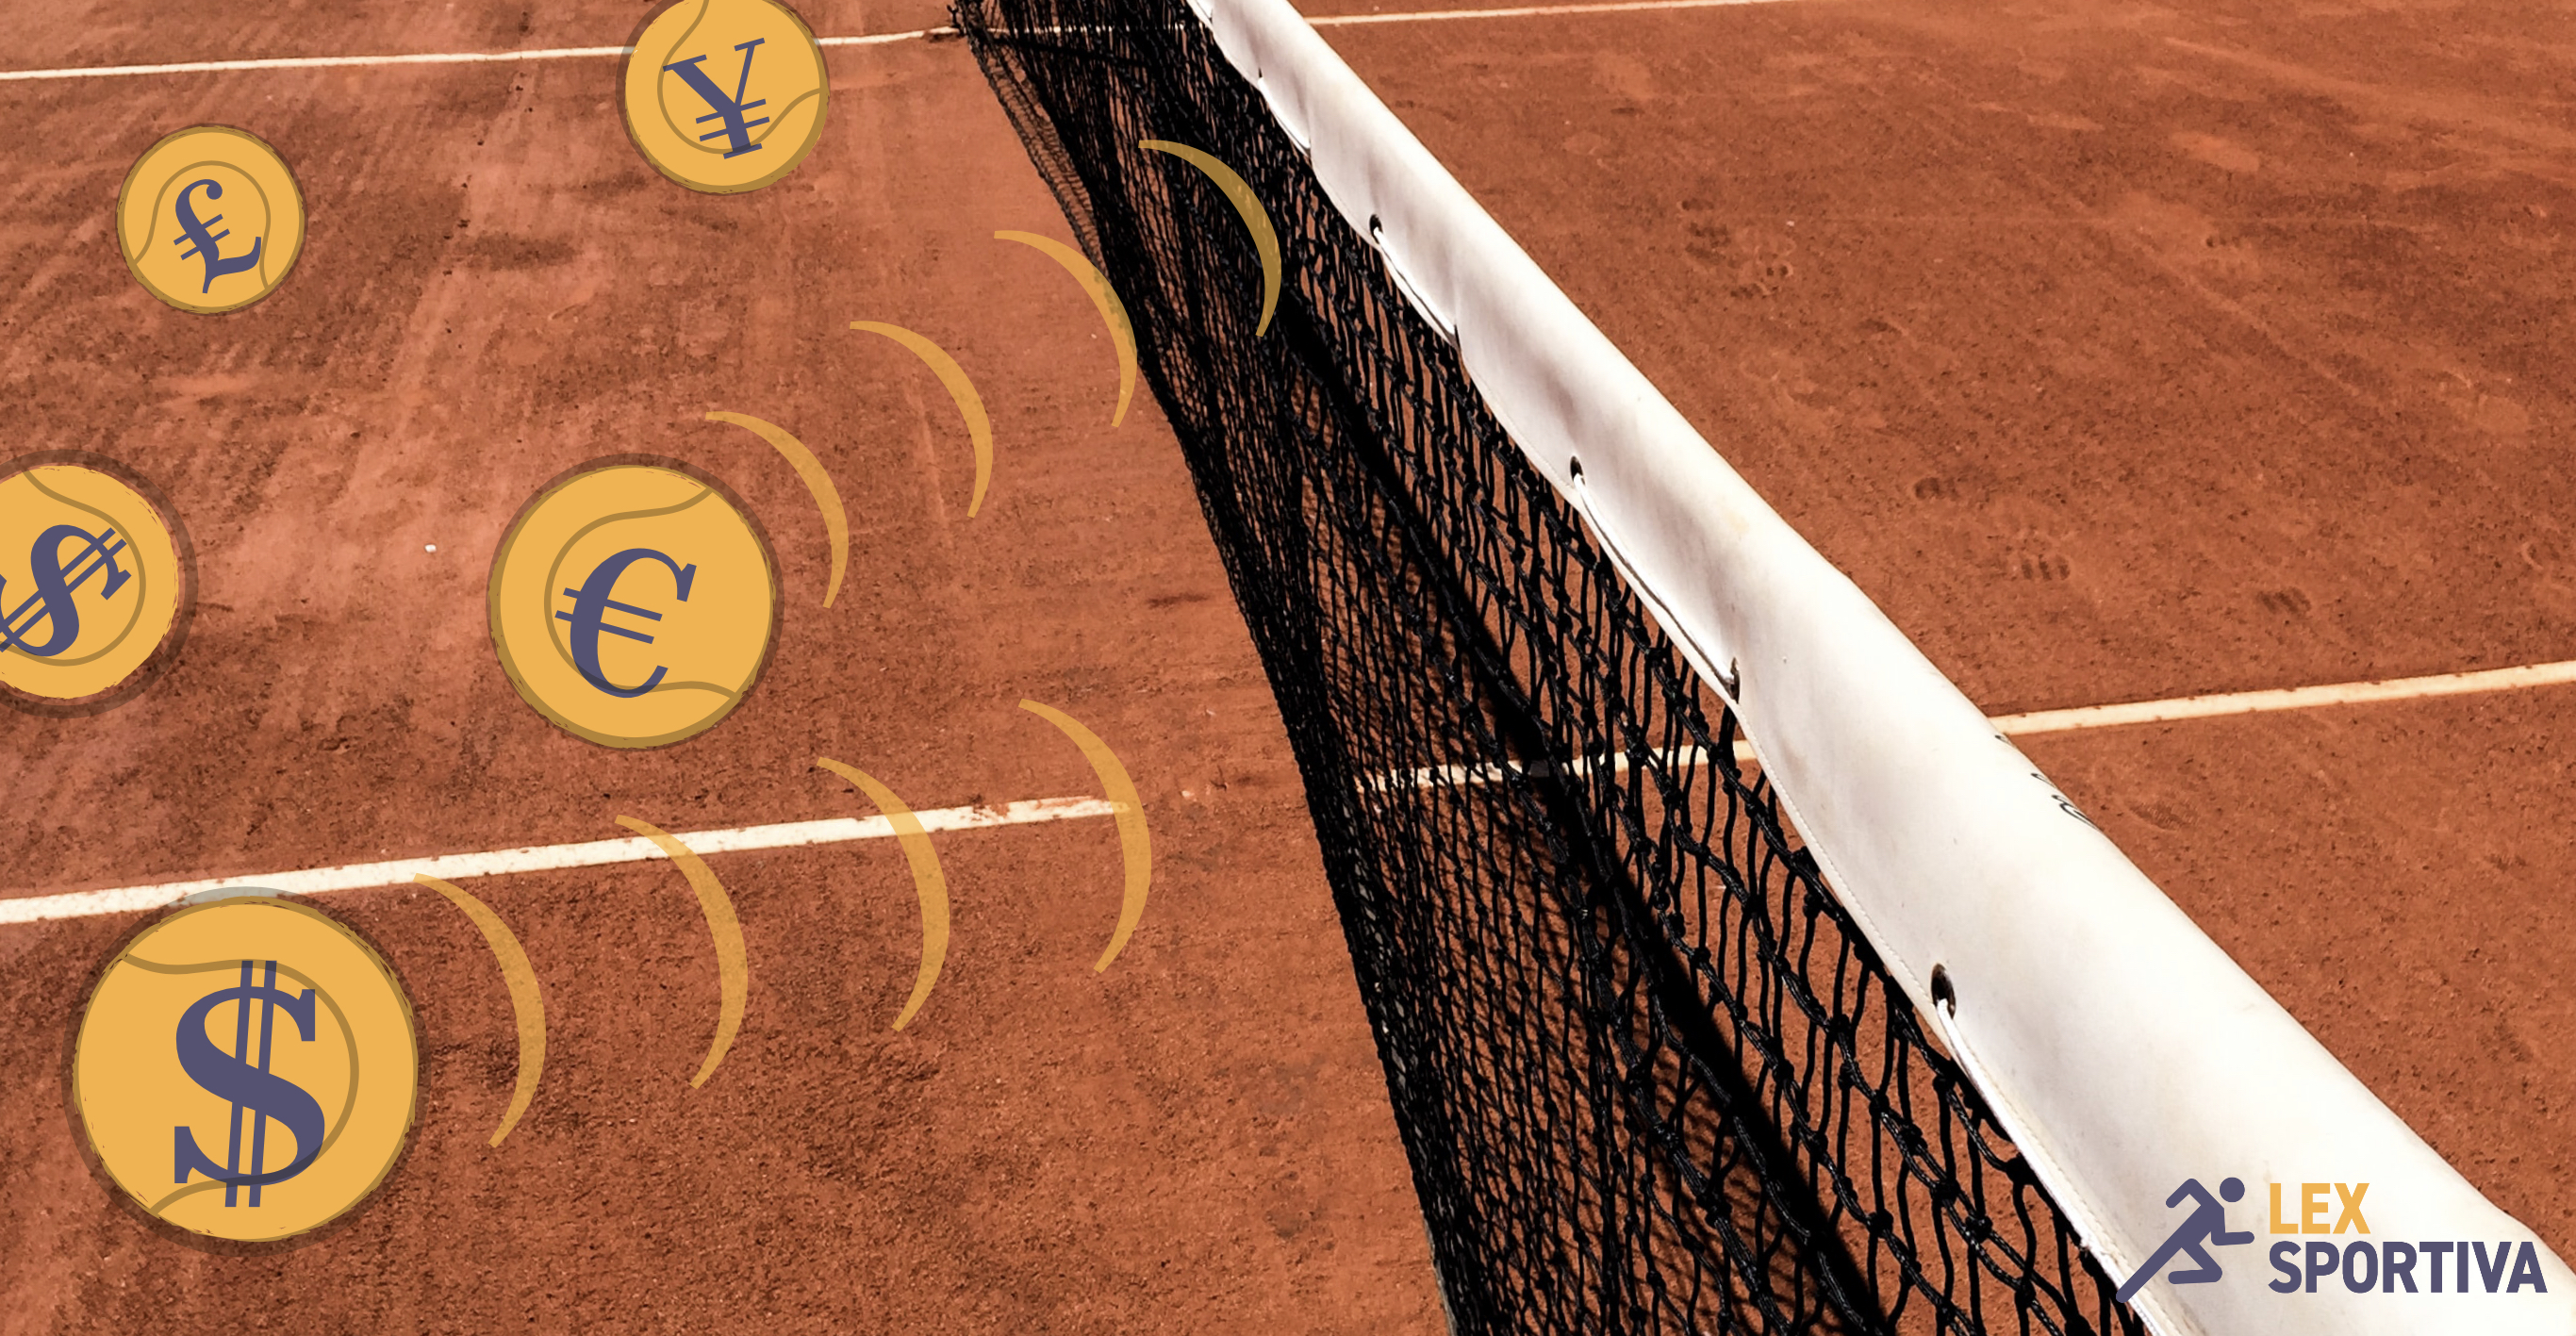 how much do people bet on tennis worldwide money